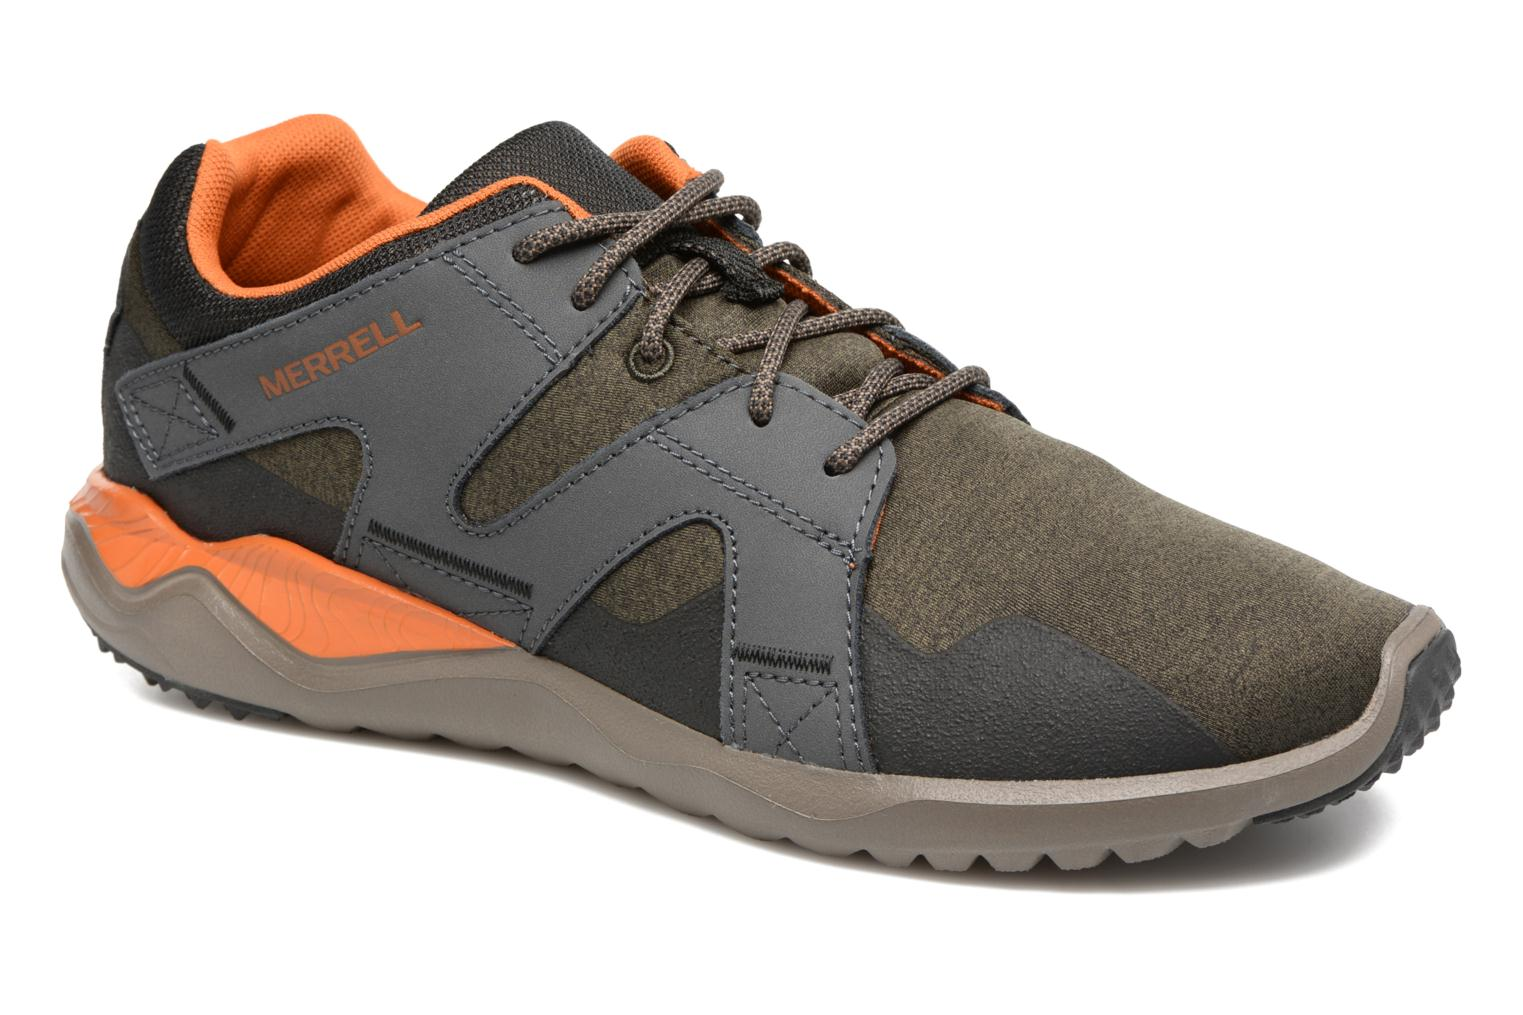 1Six8 Lace by MerrellRebajas - 30%